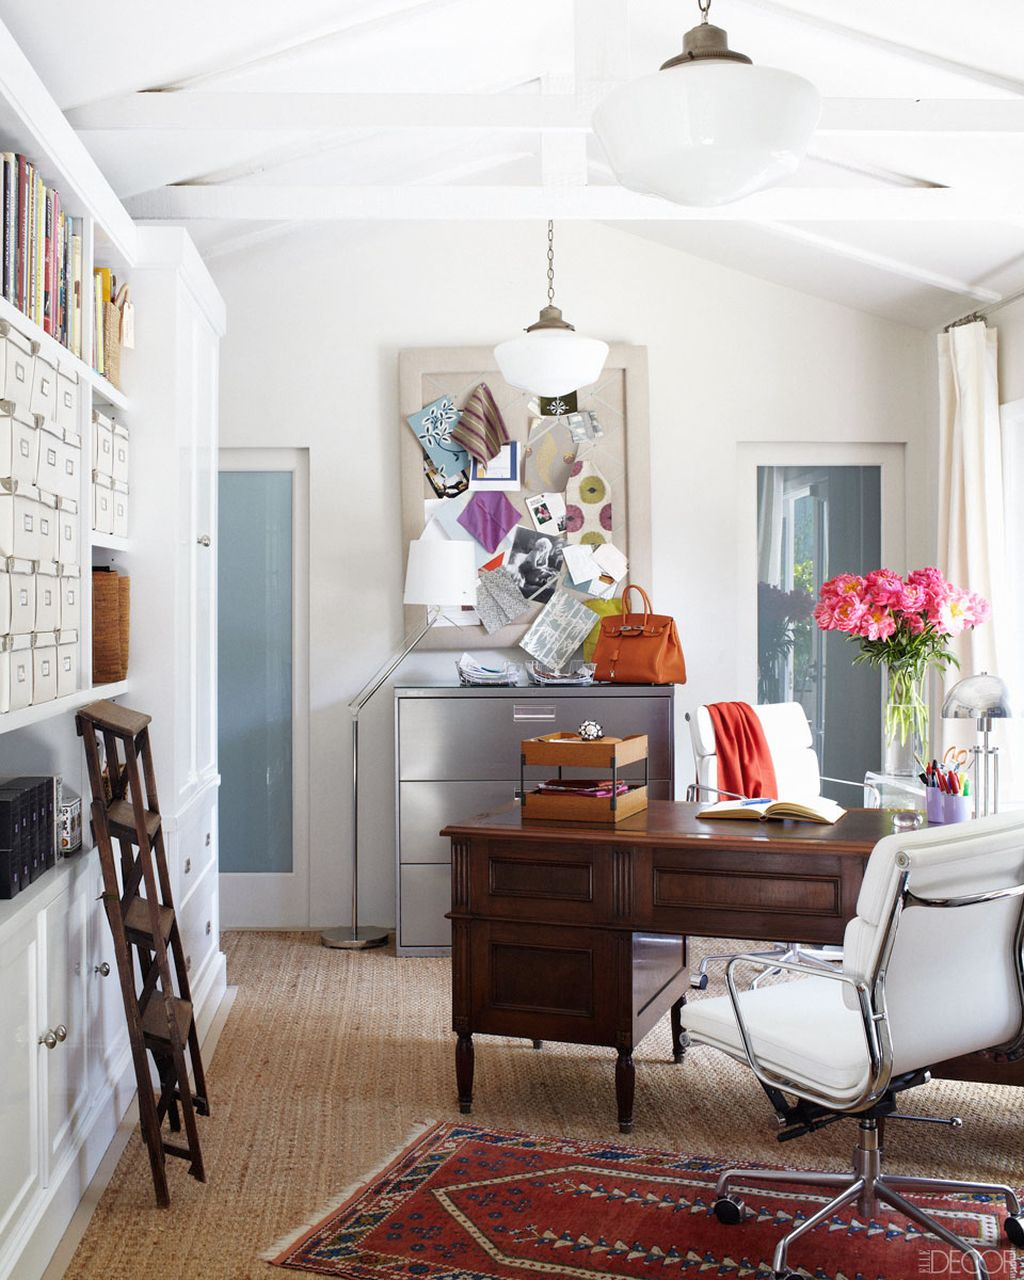 Home Design Ideas: 20 Inspiring Home Office Design Ideas For Small Spaces